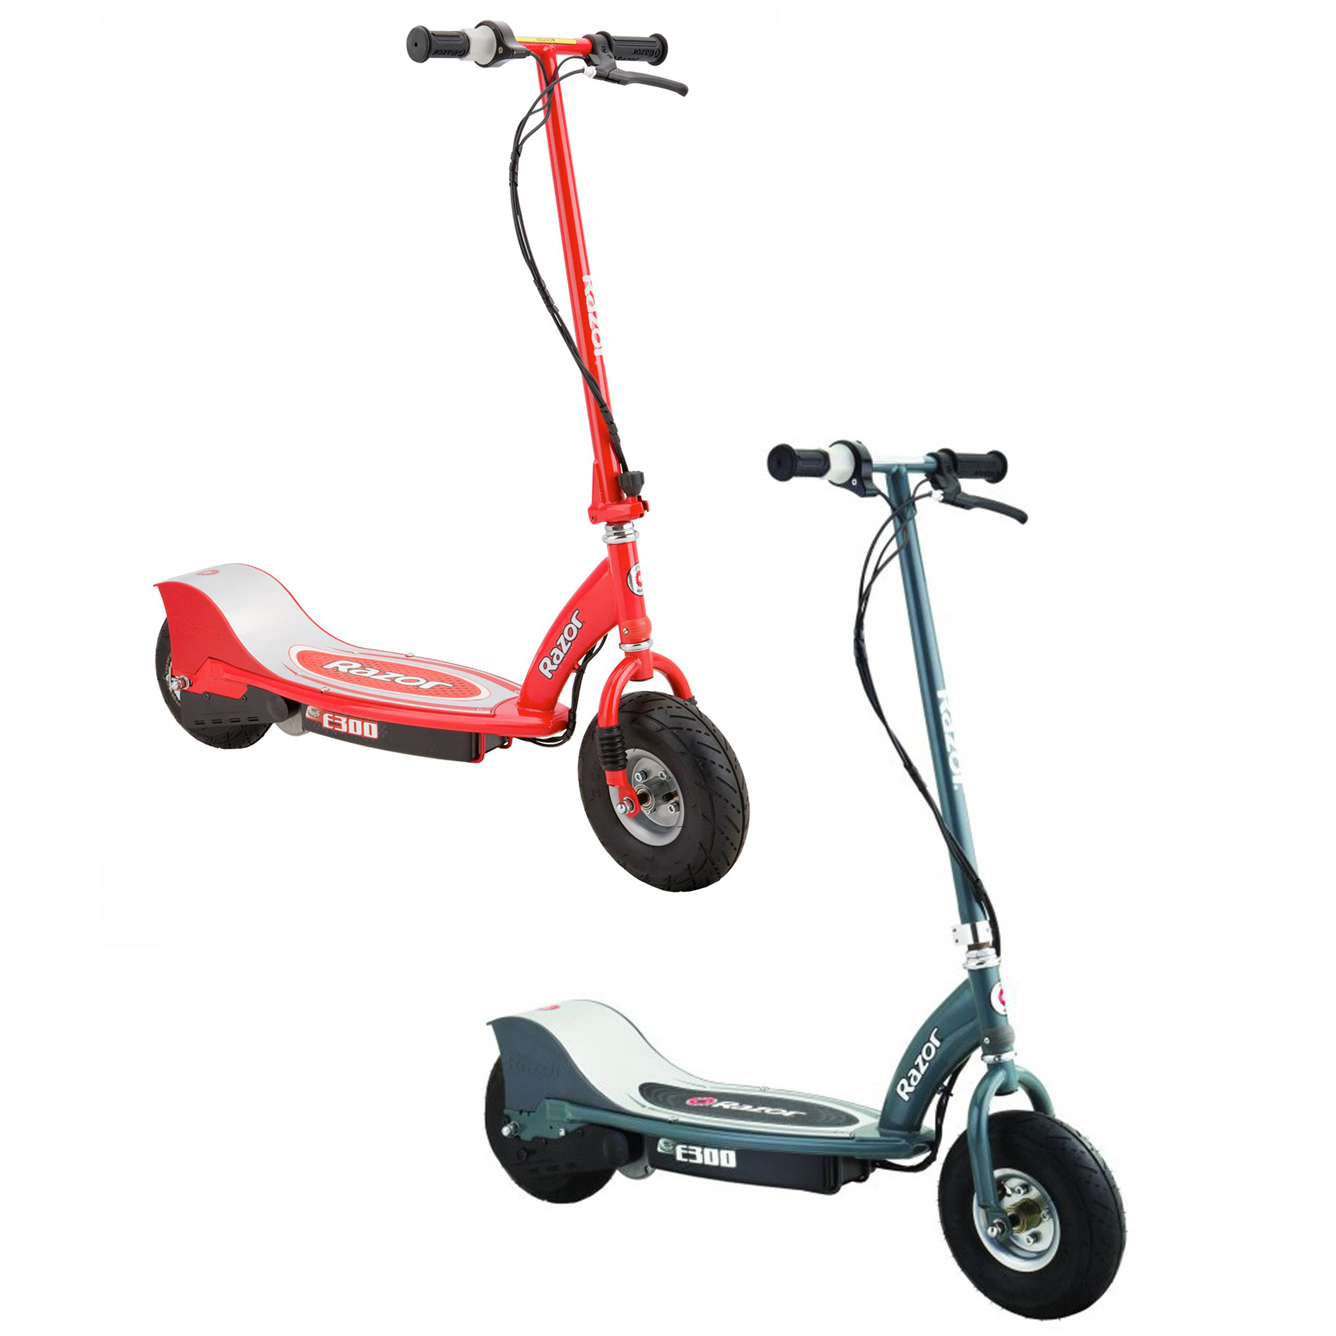 Razor E300 Rechargeable Electric Motorized Ride On Kids Scooters, 1 Red & 1 Gray